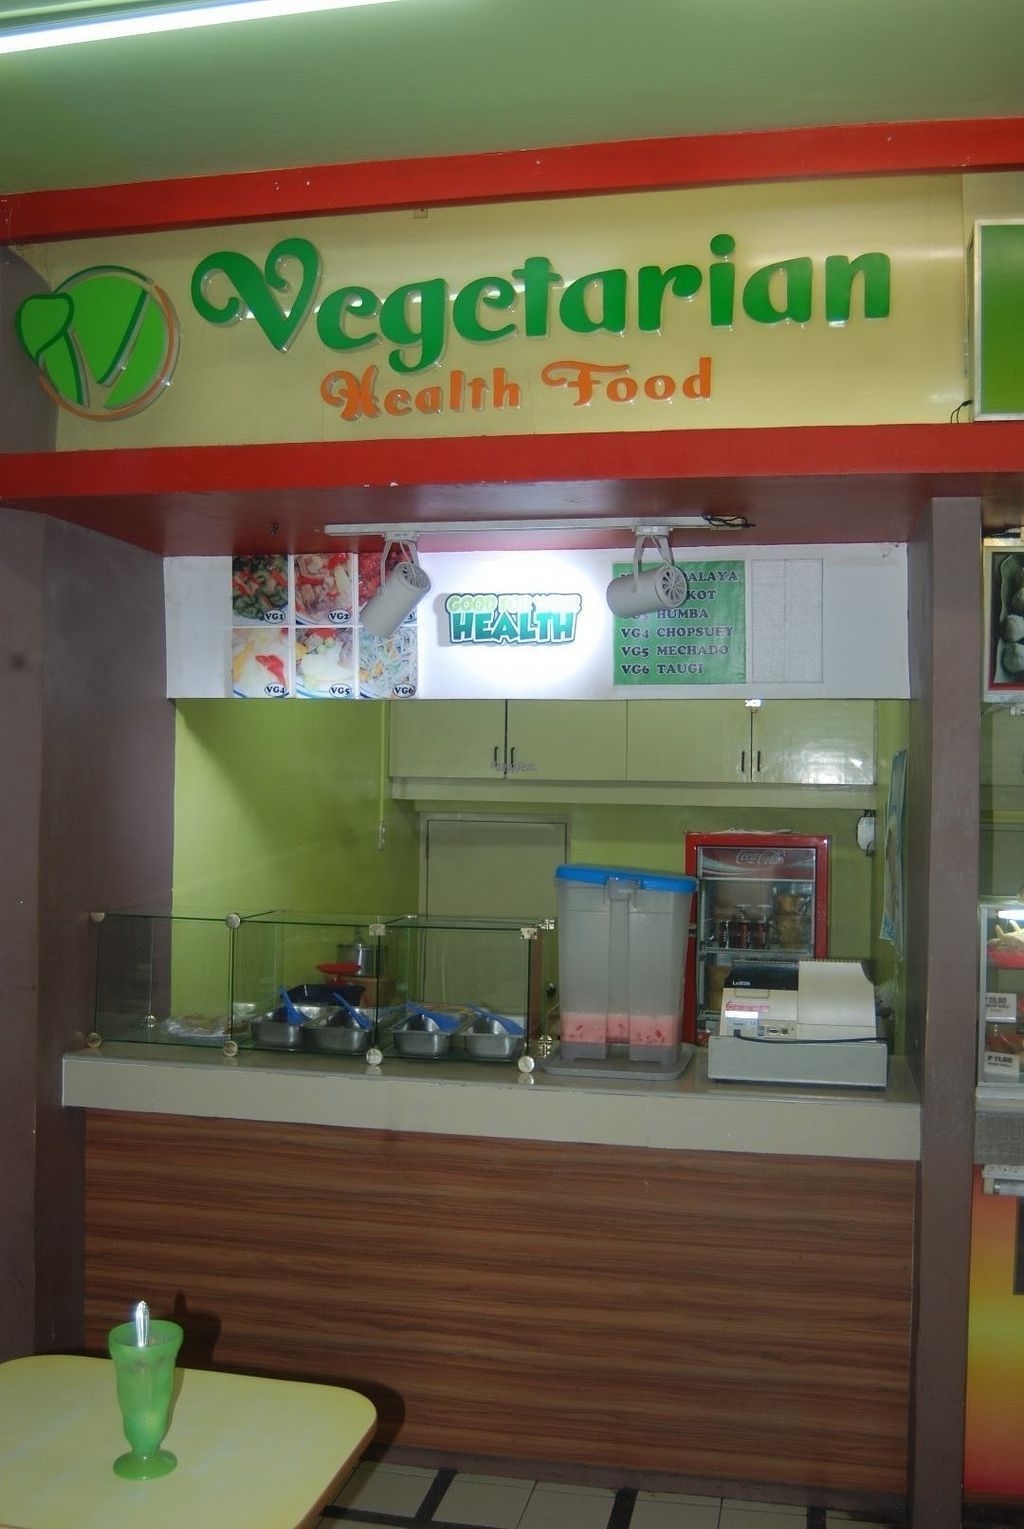 "Photo of Vegetarian Health Foods  by <a href=""/members/profile/AlMurphy"">AlMurphy</a> <br/>The Kiosk has been there for quite a few years now <br/> October 13, 2016  - <a href='/contact/abuse/image/81377/181658'>Report</a>"